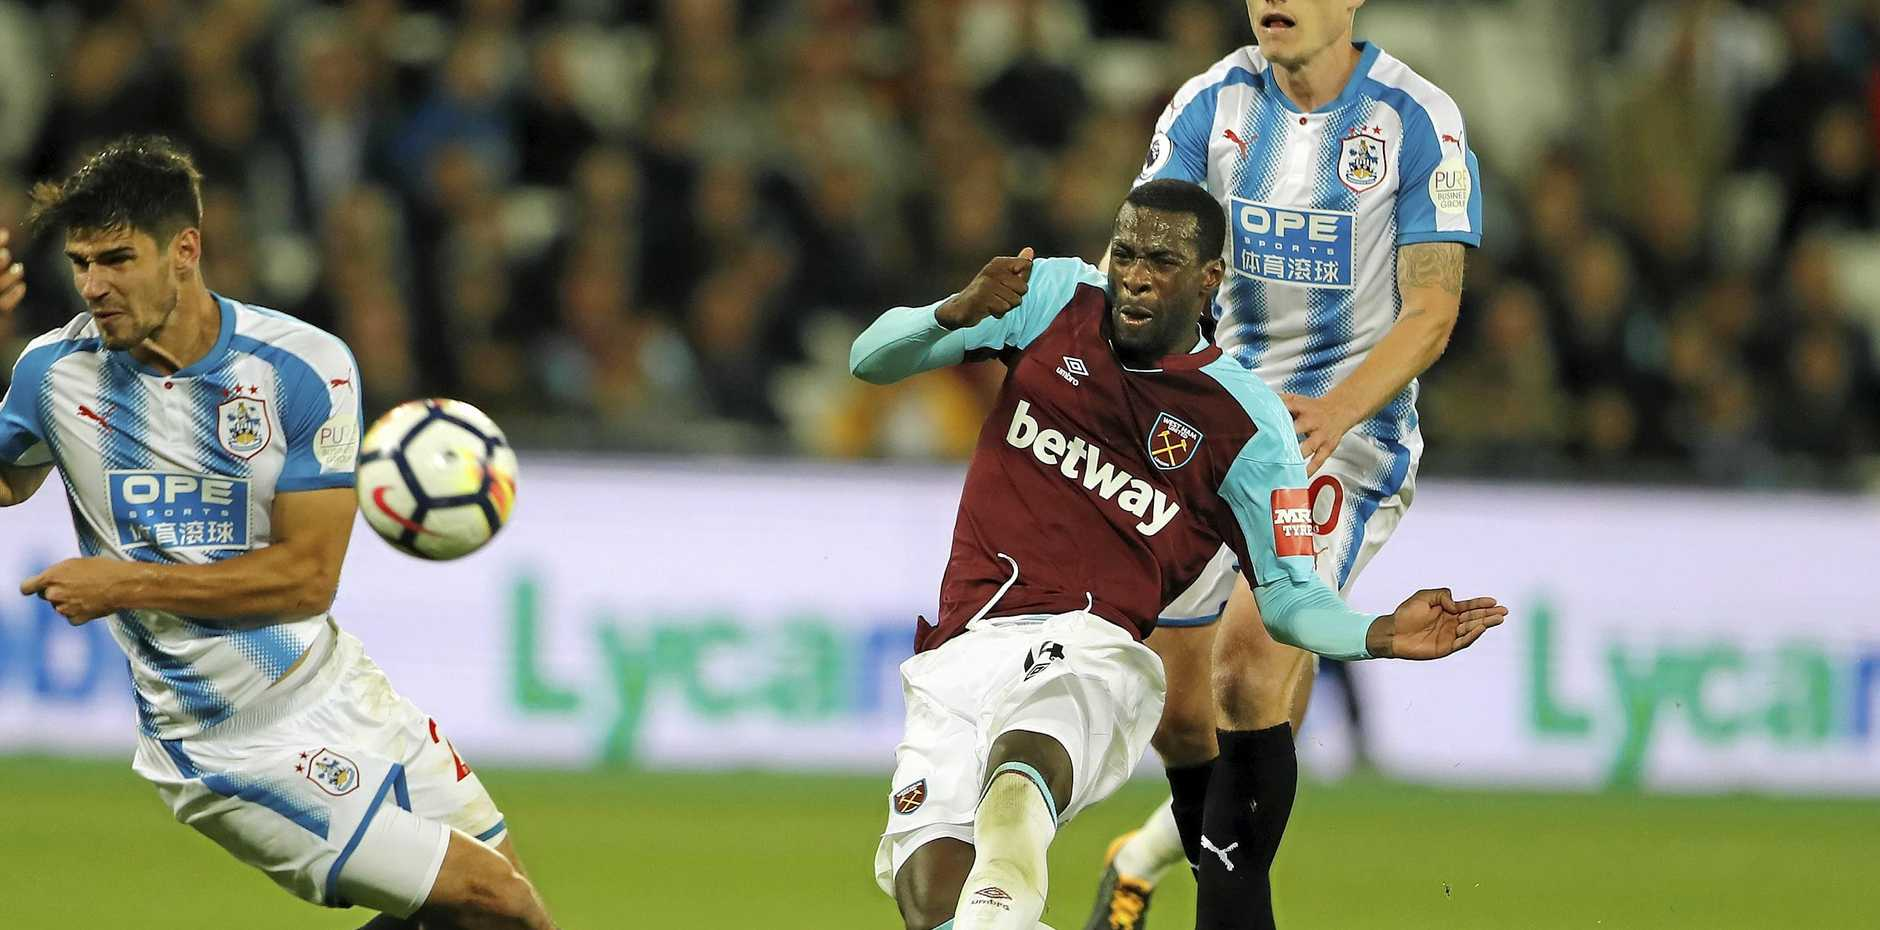 West Ham's Pedro Obiang shoots to score his side's first goal against Huddersfield.